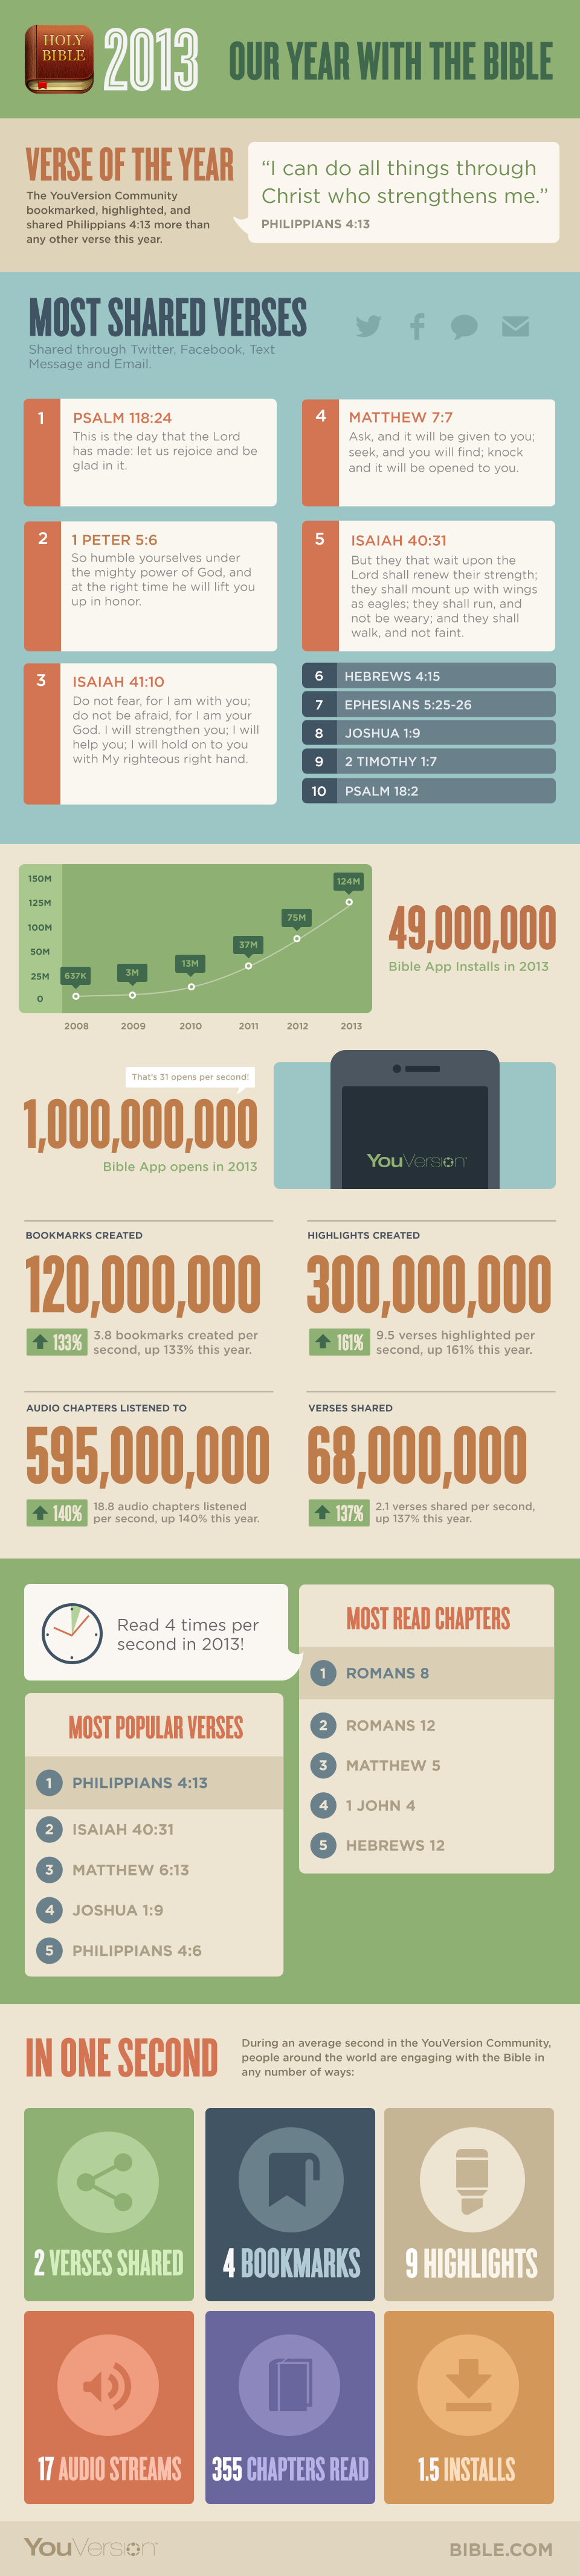 YV-Infographic-2013-Judson